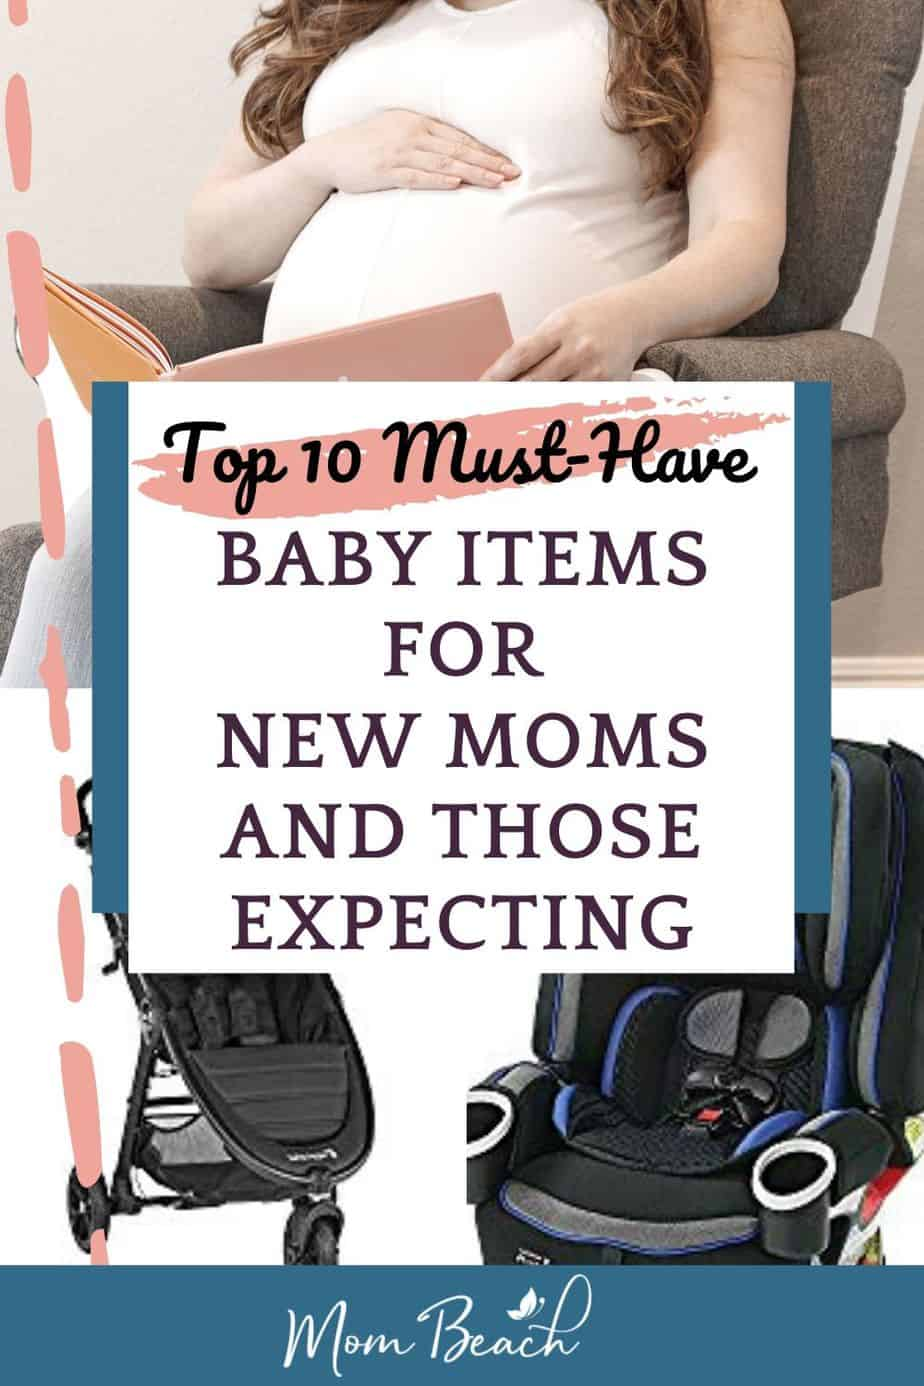 These top 10 must-have items for new moms and expecting ones is a must-read! You want to make sure you have plenty of items for your new baby such as diapers, cribs, breast pump, and more. We have researched the top items on Amazon for your new baby. This is perfect for shower gifts, newborns, and more ideas! #musthaveitemsfornewmoms #musthaveitemsforbaby #musthavebabyitems #musthavebabyshowergifts #musthaveitemsformoms